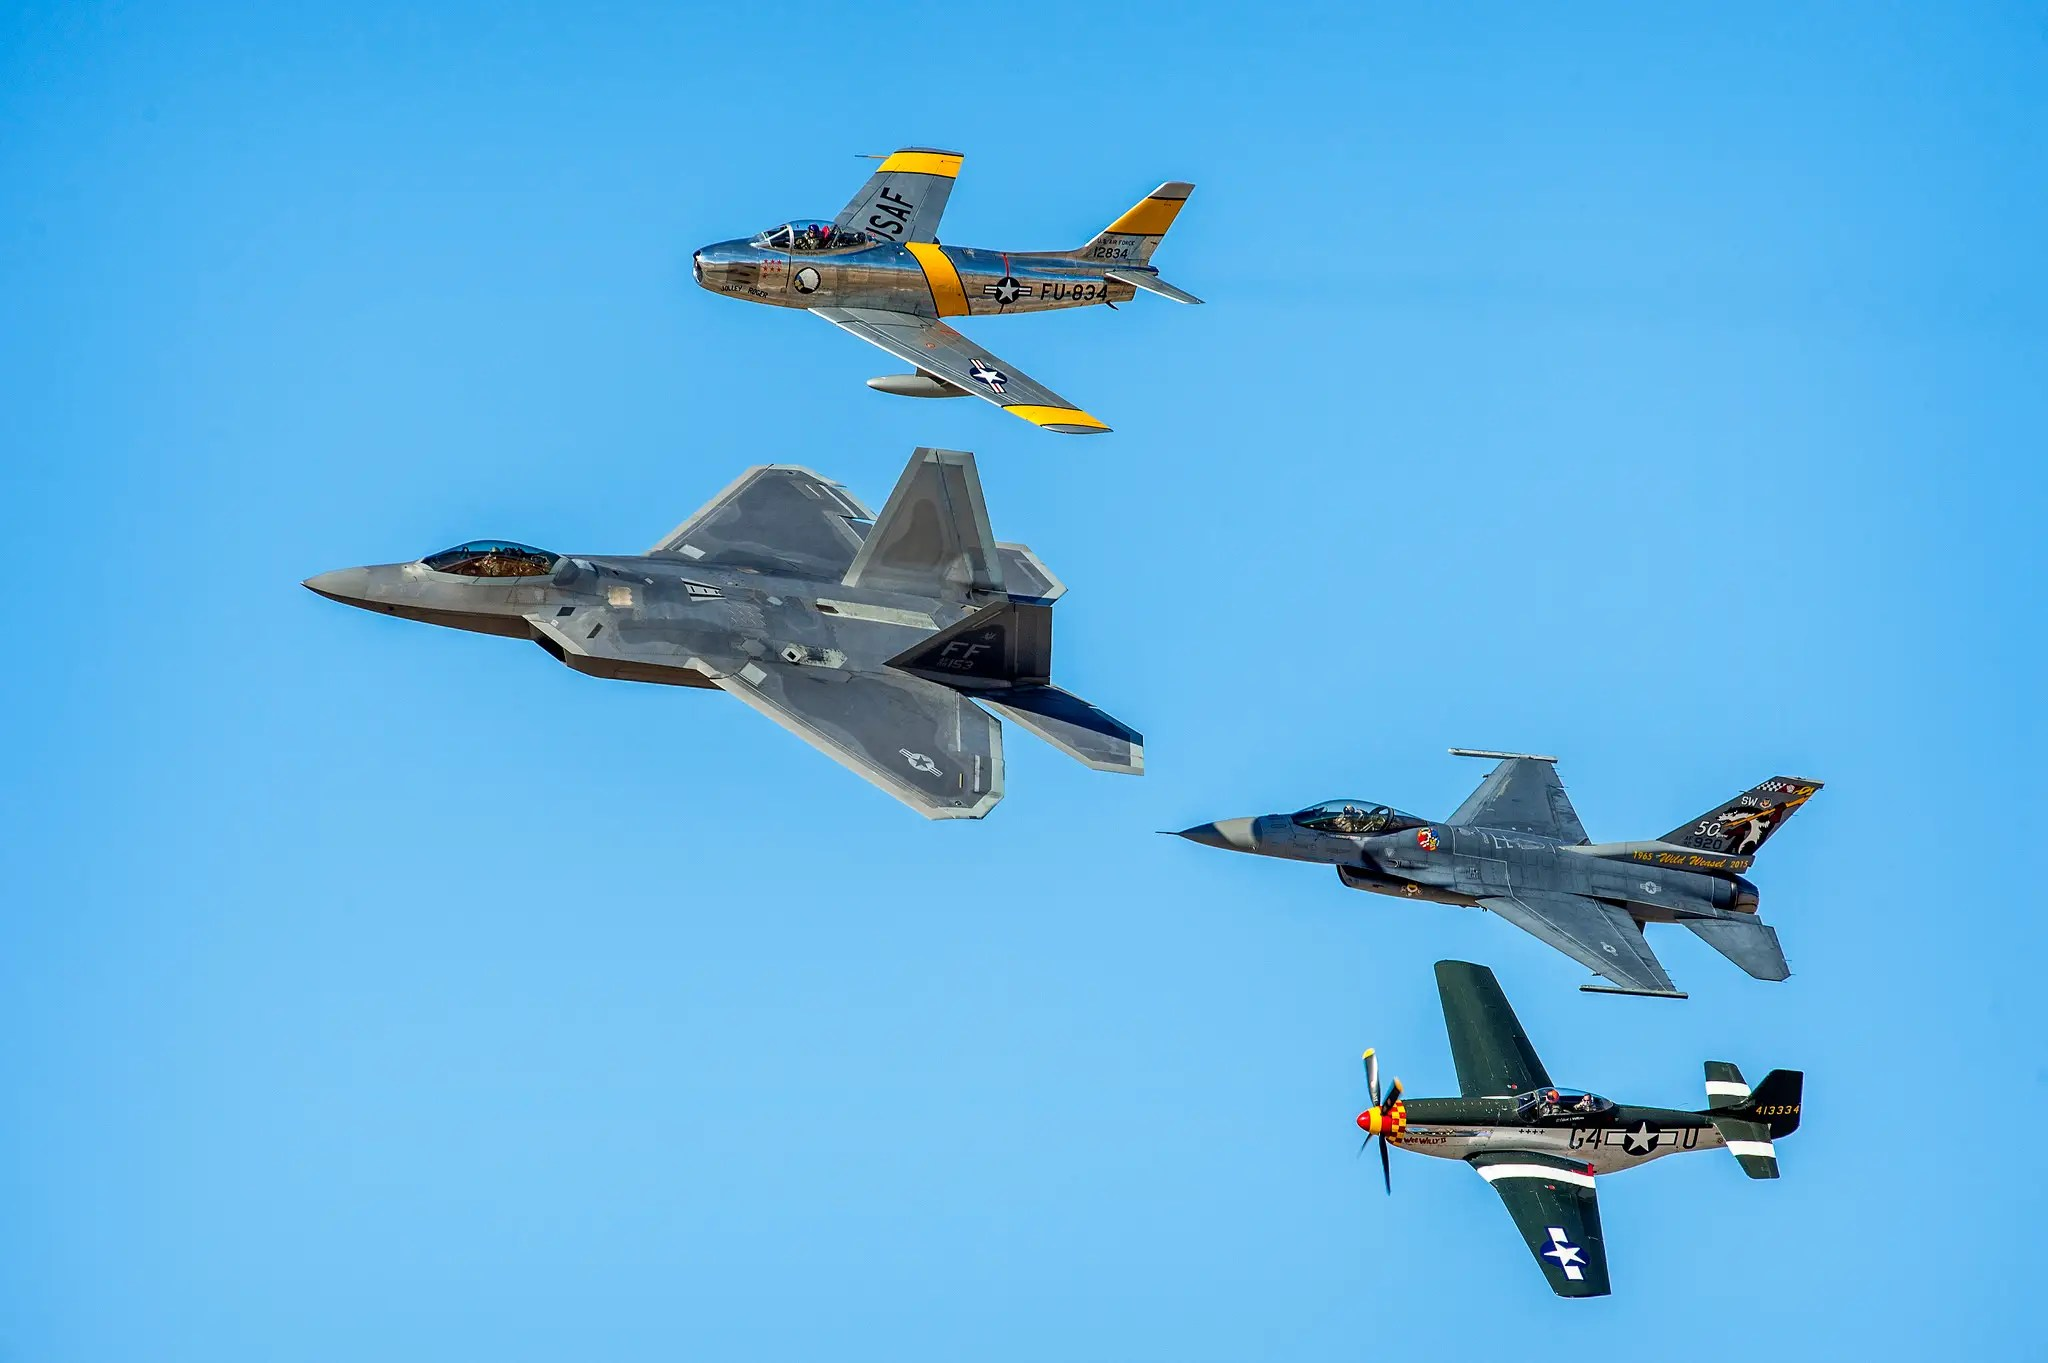 Here an F-22 Raptor leads the pack of heritage fighters, but there is an even newer aircraft at the show ...